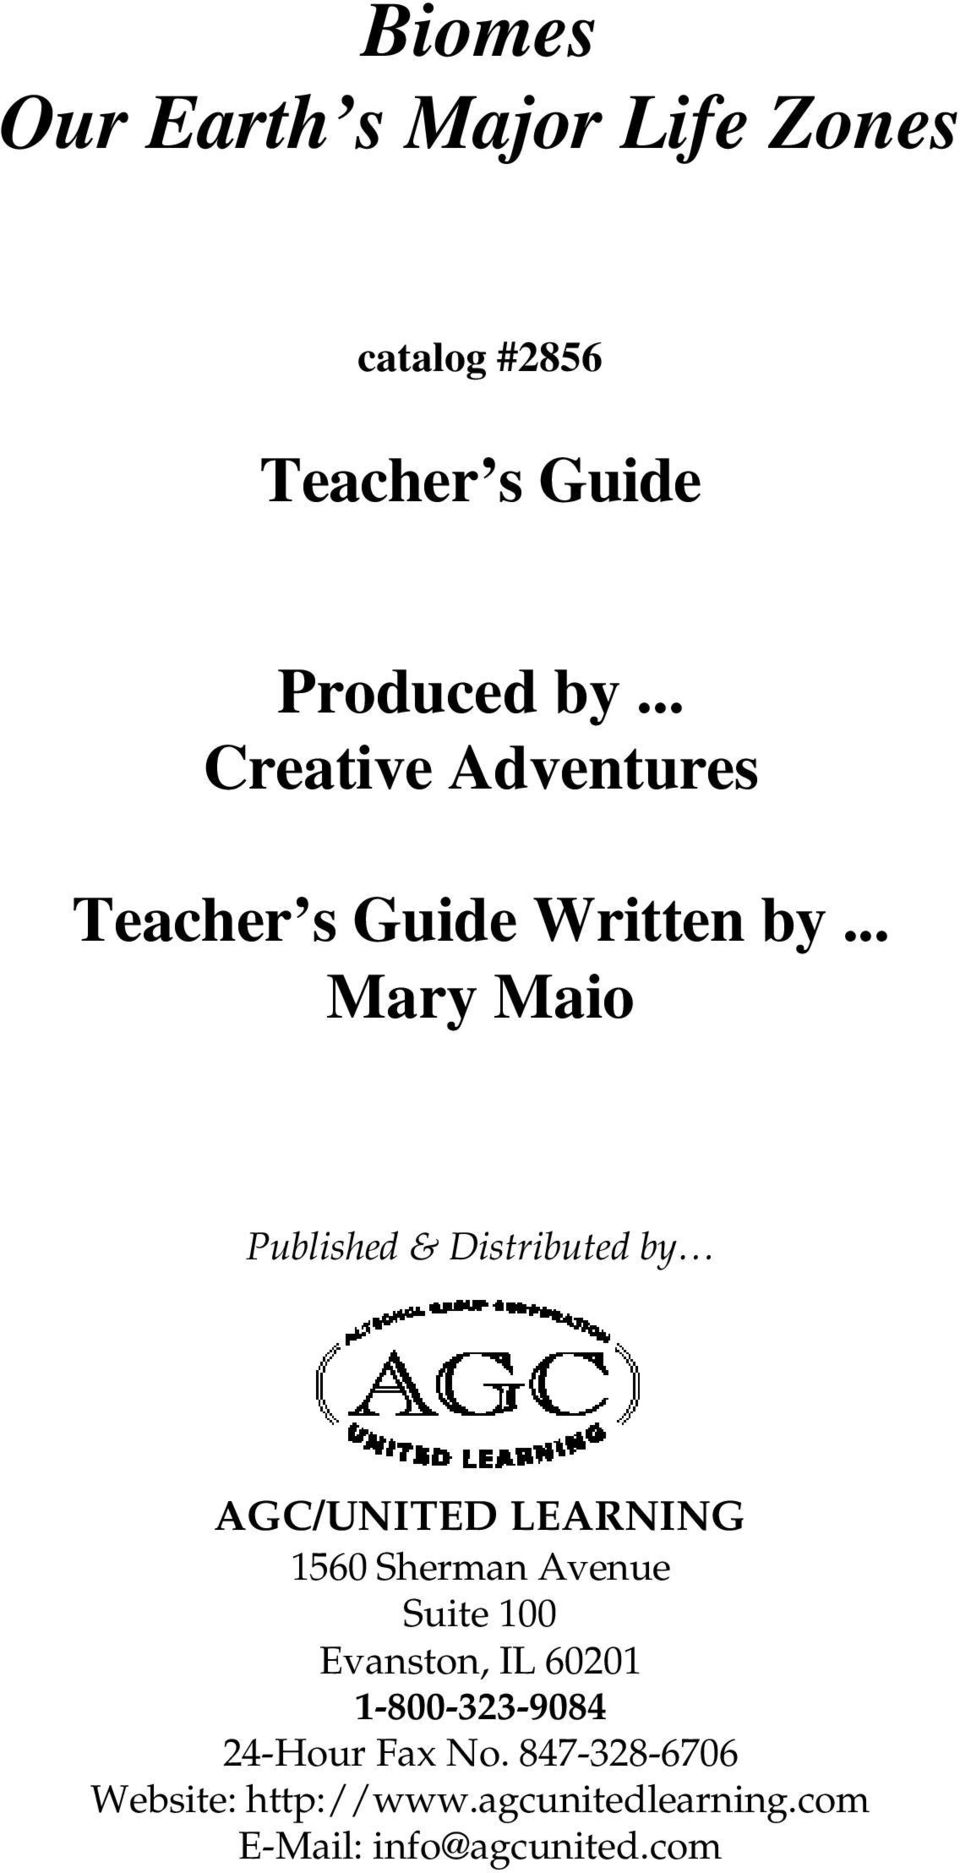 .. Mary Maio Published & Distributed by AGC/UNITED LEARNING 1560 Sherman Avenue Suite